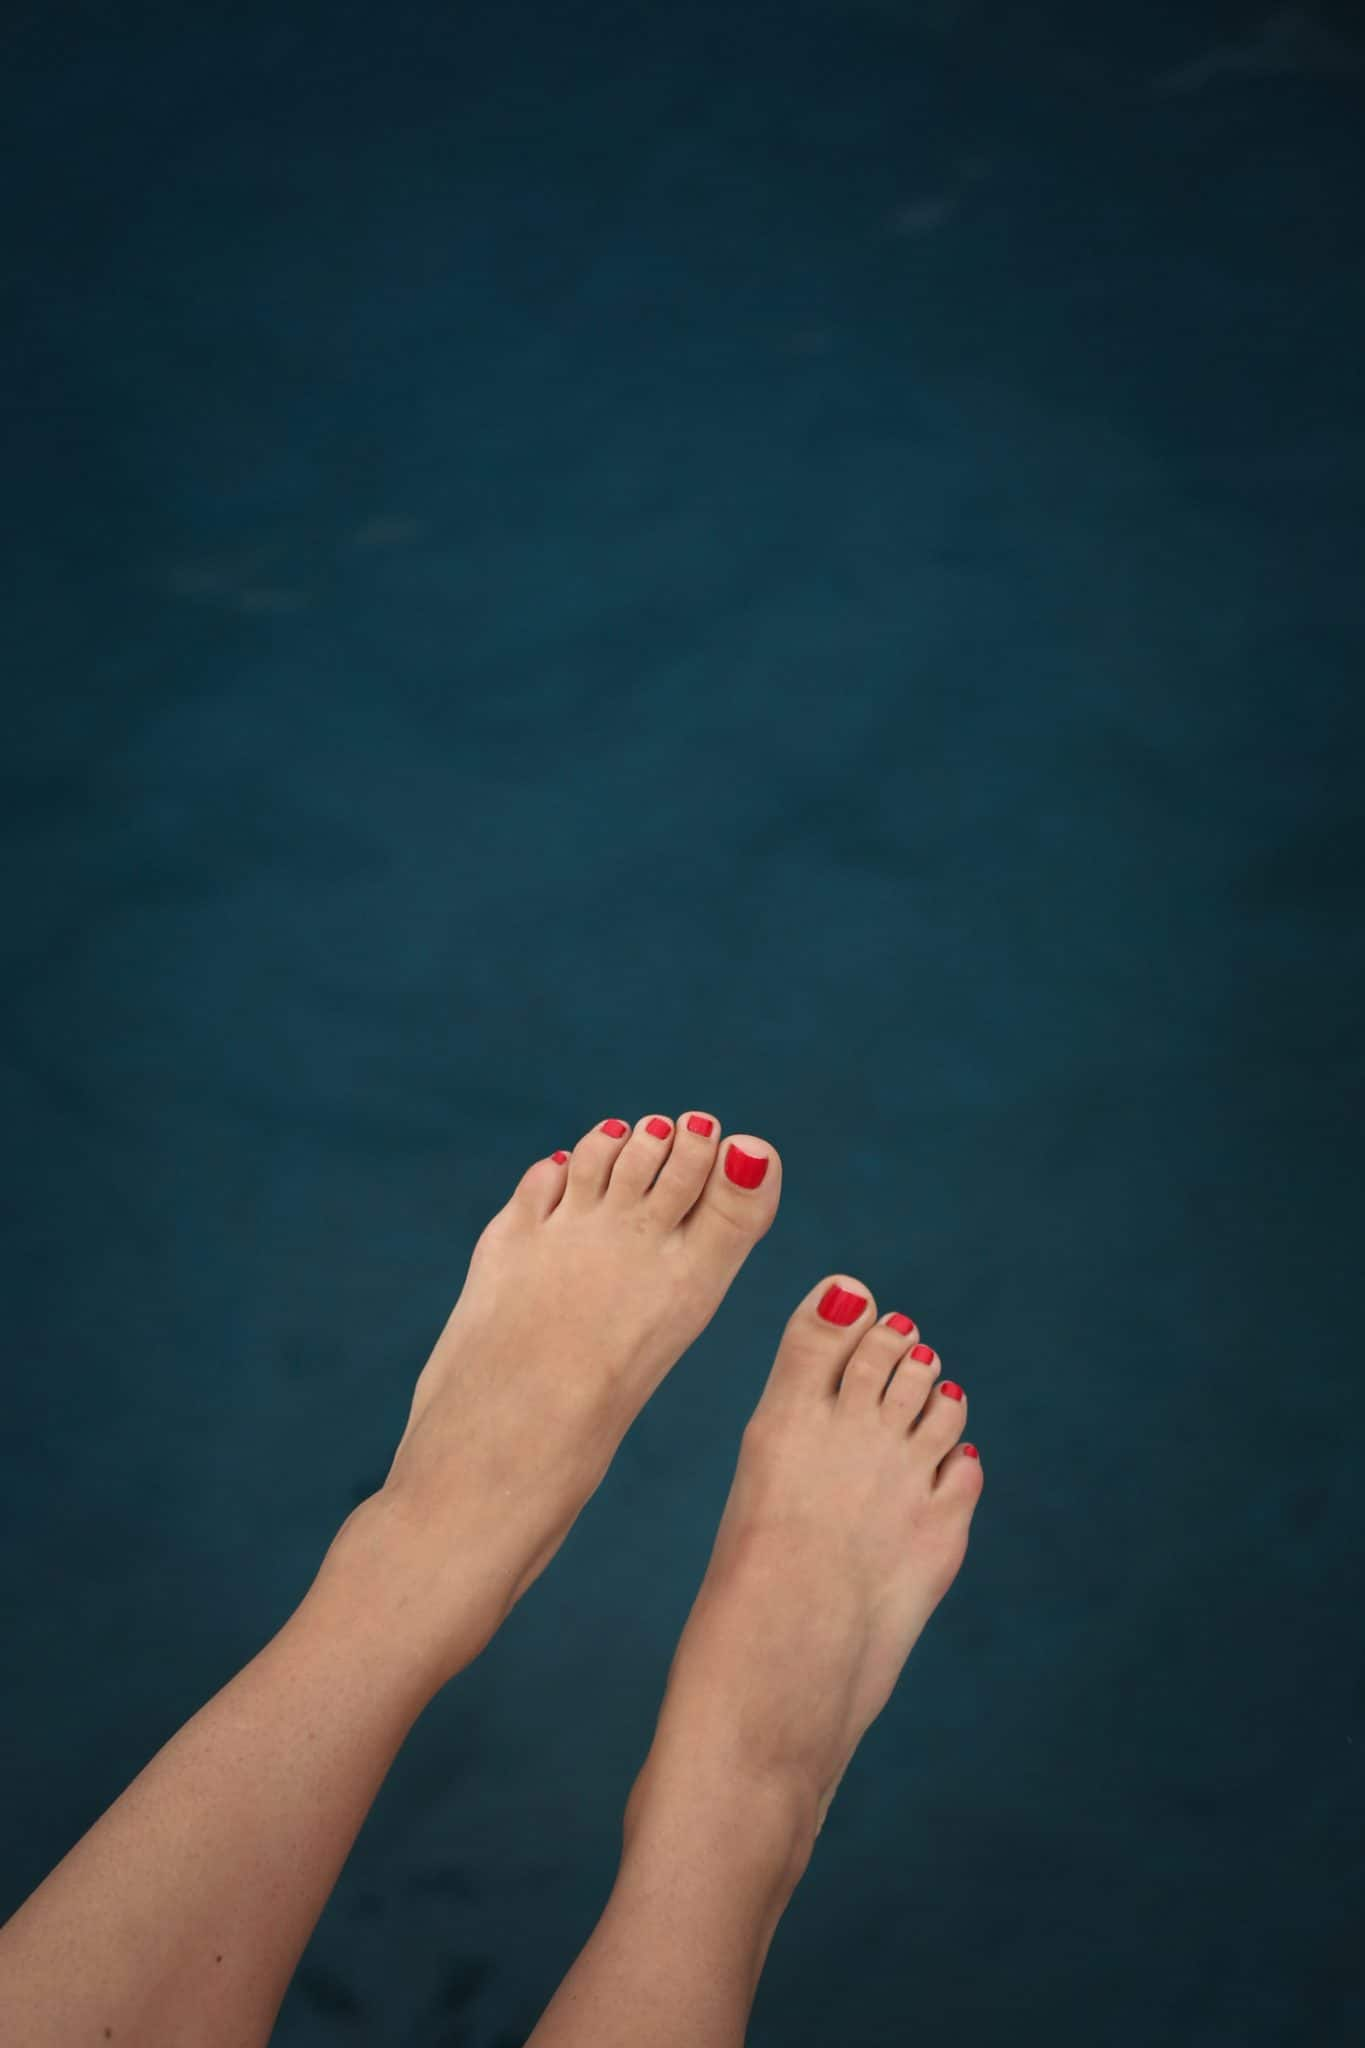 feet in the water, ocean, cute photo at the beach - My Style Vita